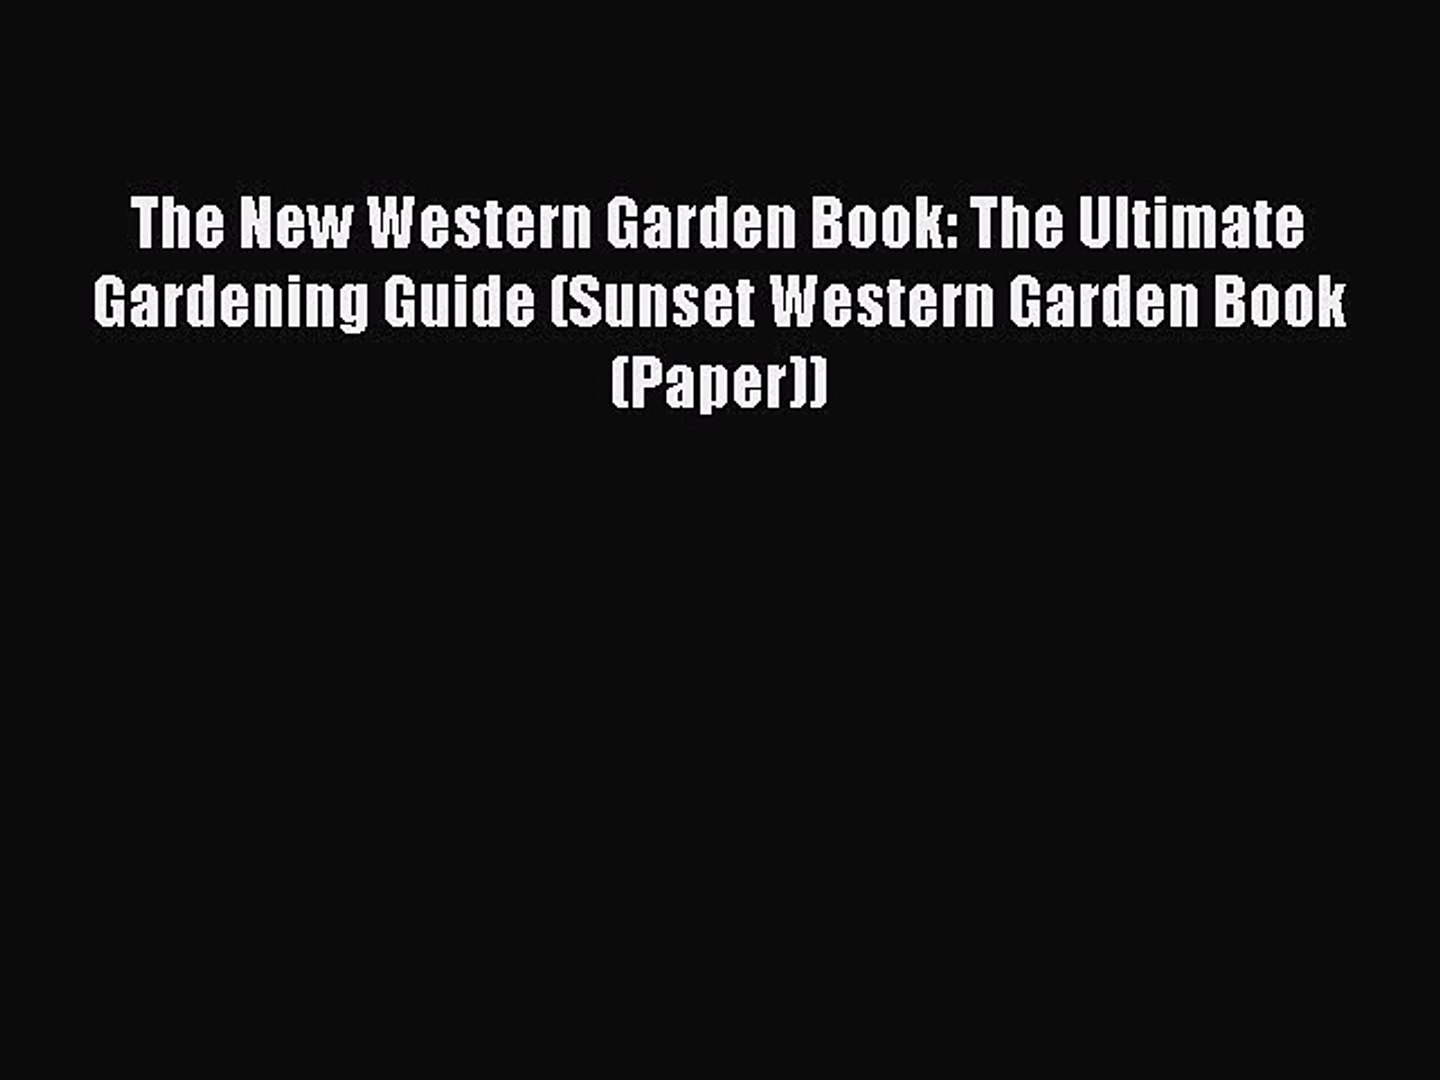 Download The New Western Garden Book: The Ultimate Gardening Guide (Sunset Western Garden Book